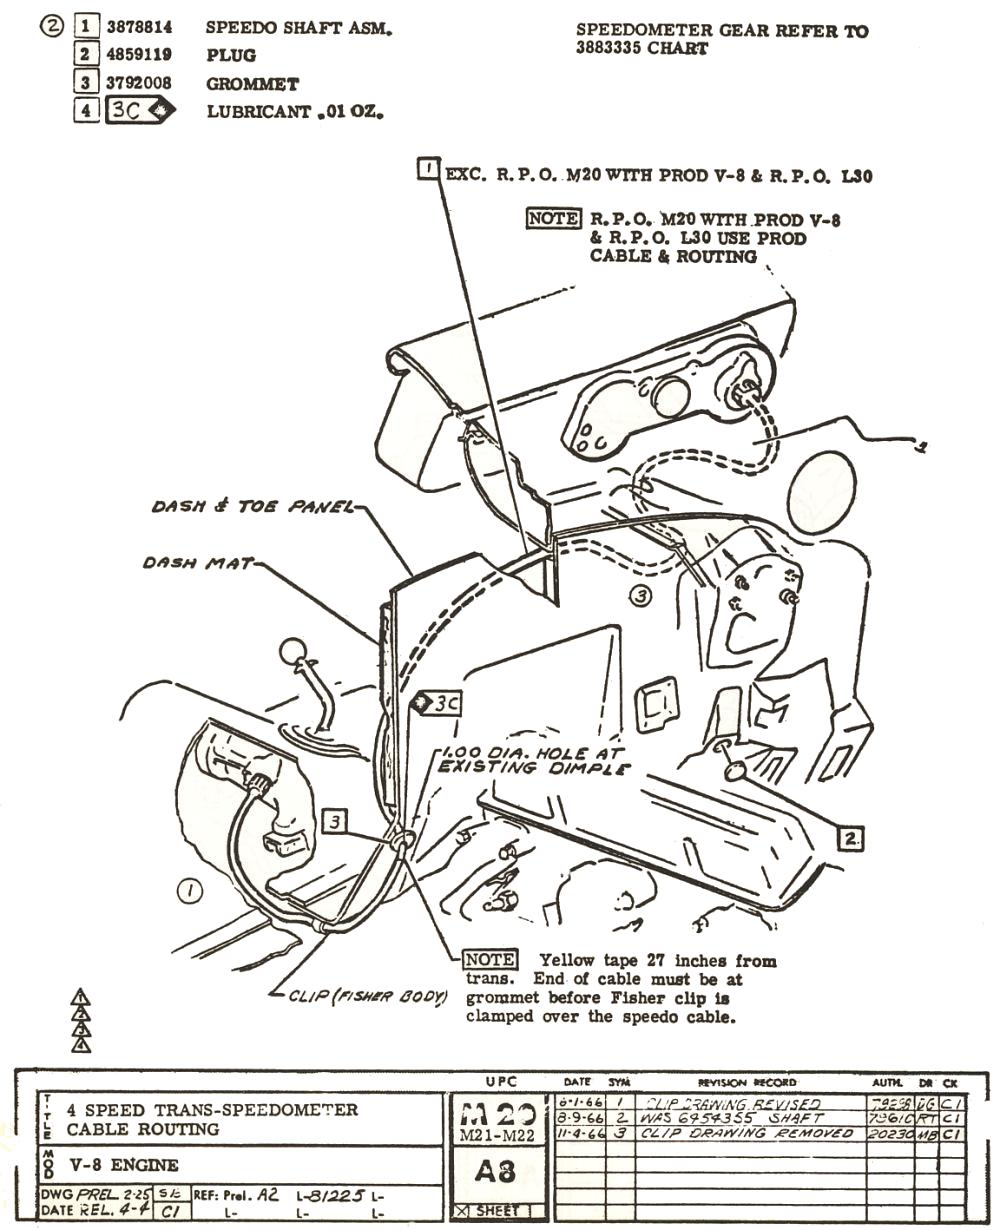 1967 muncie speedometer cable length and routing